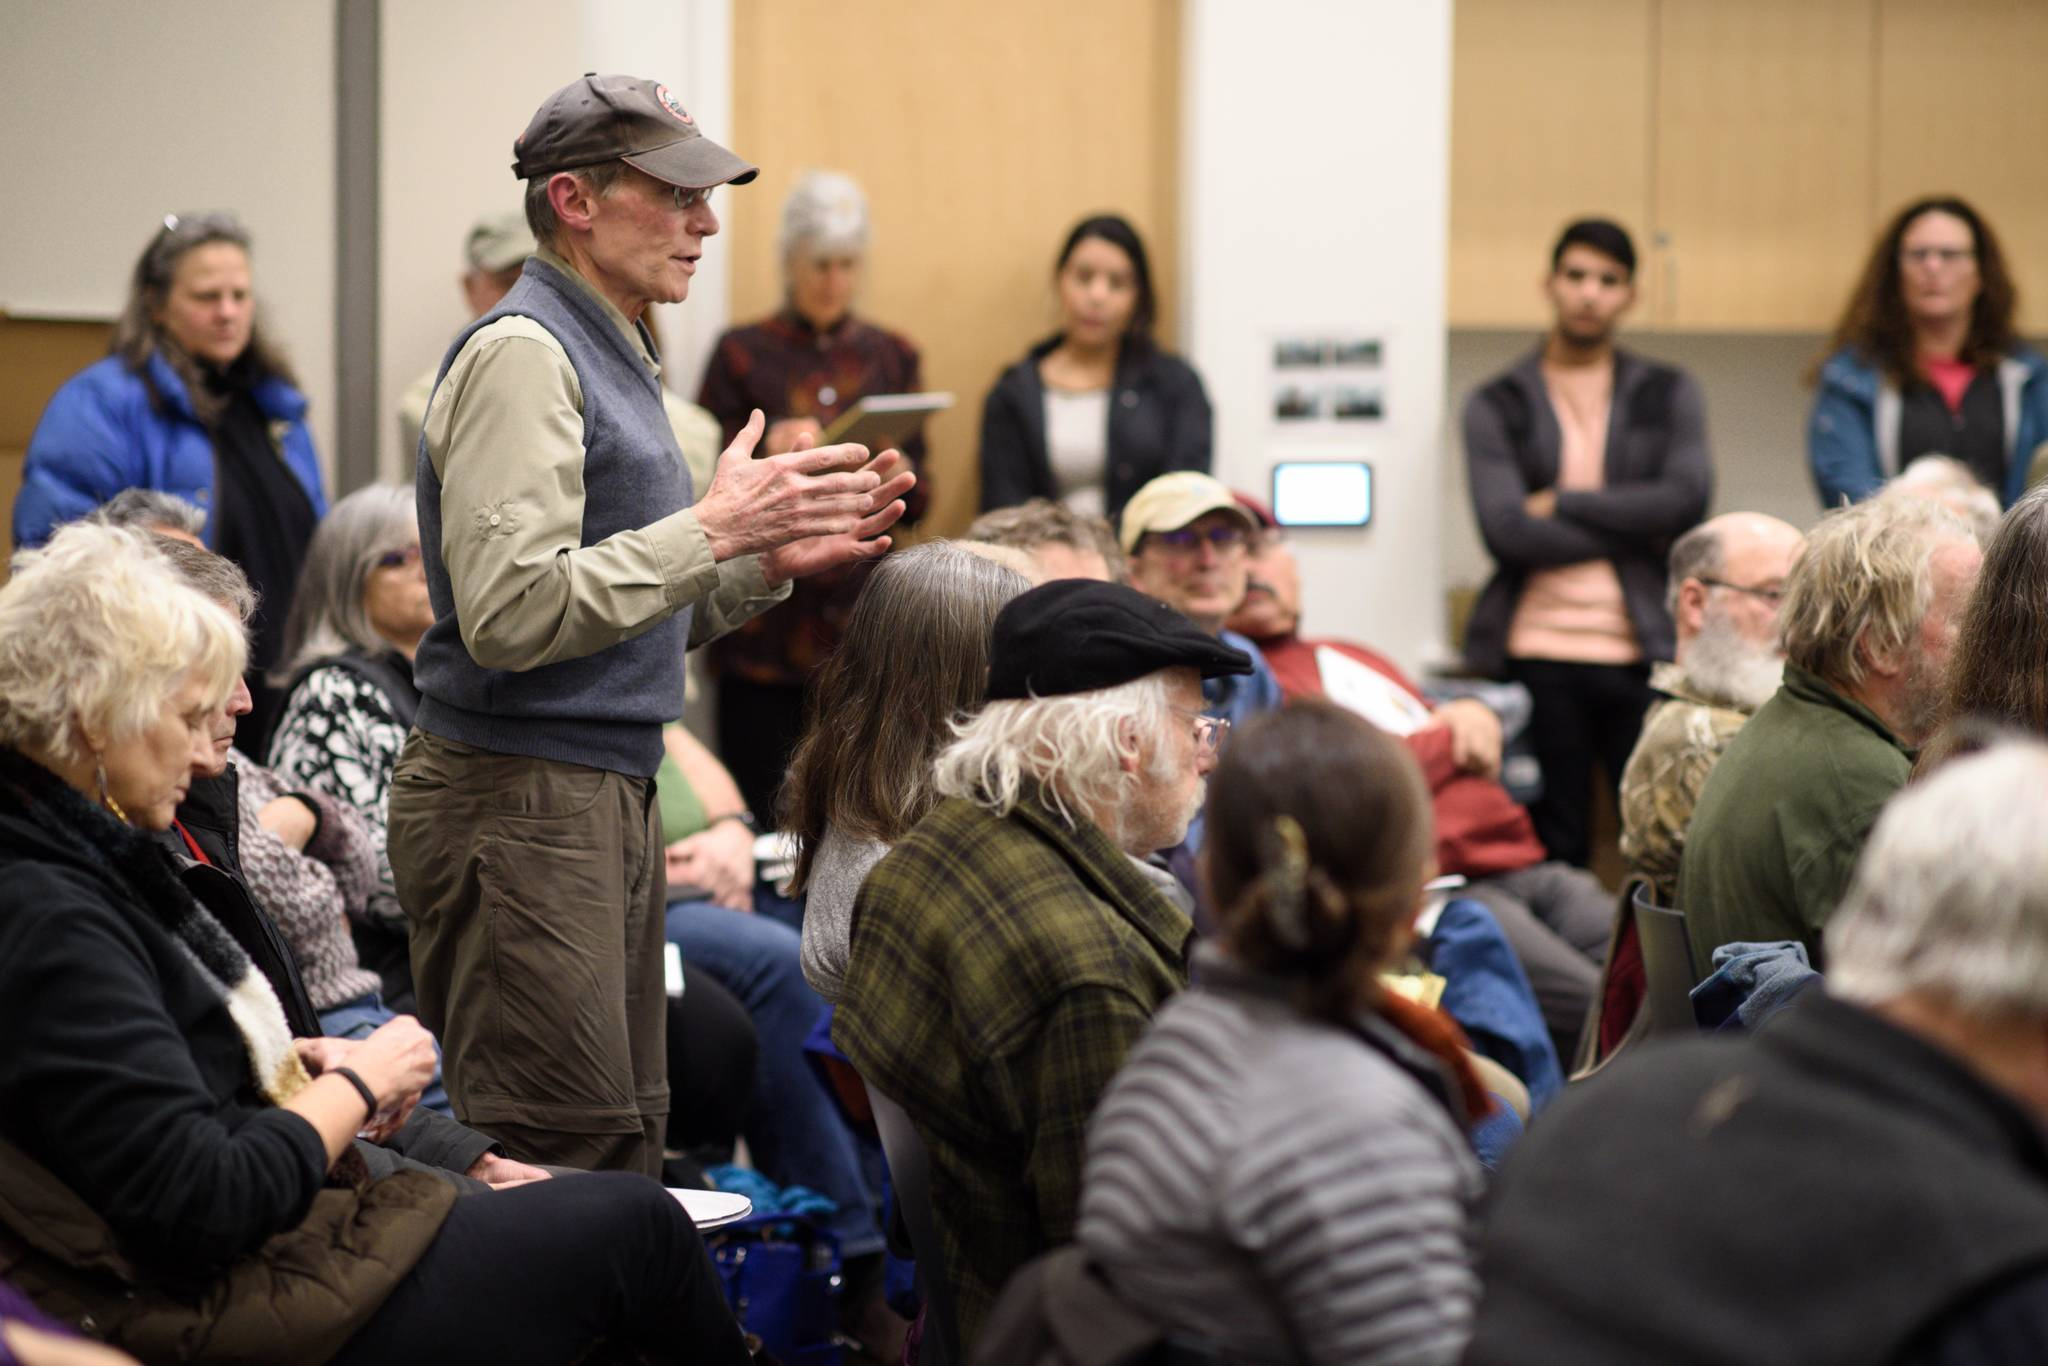 Gene Miller speaks up during a standing-room only town hall meeting featuring Juneau's new legislators at the Mendenhall Valley Public Library on Tuesday, Jan. 29, 2019. (Michael Penn | Juneau Empire)